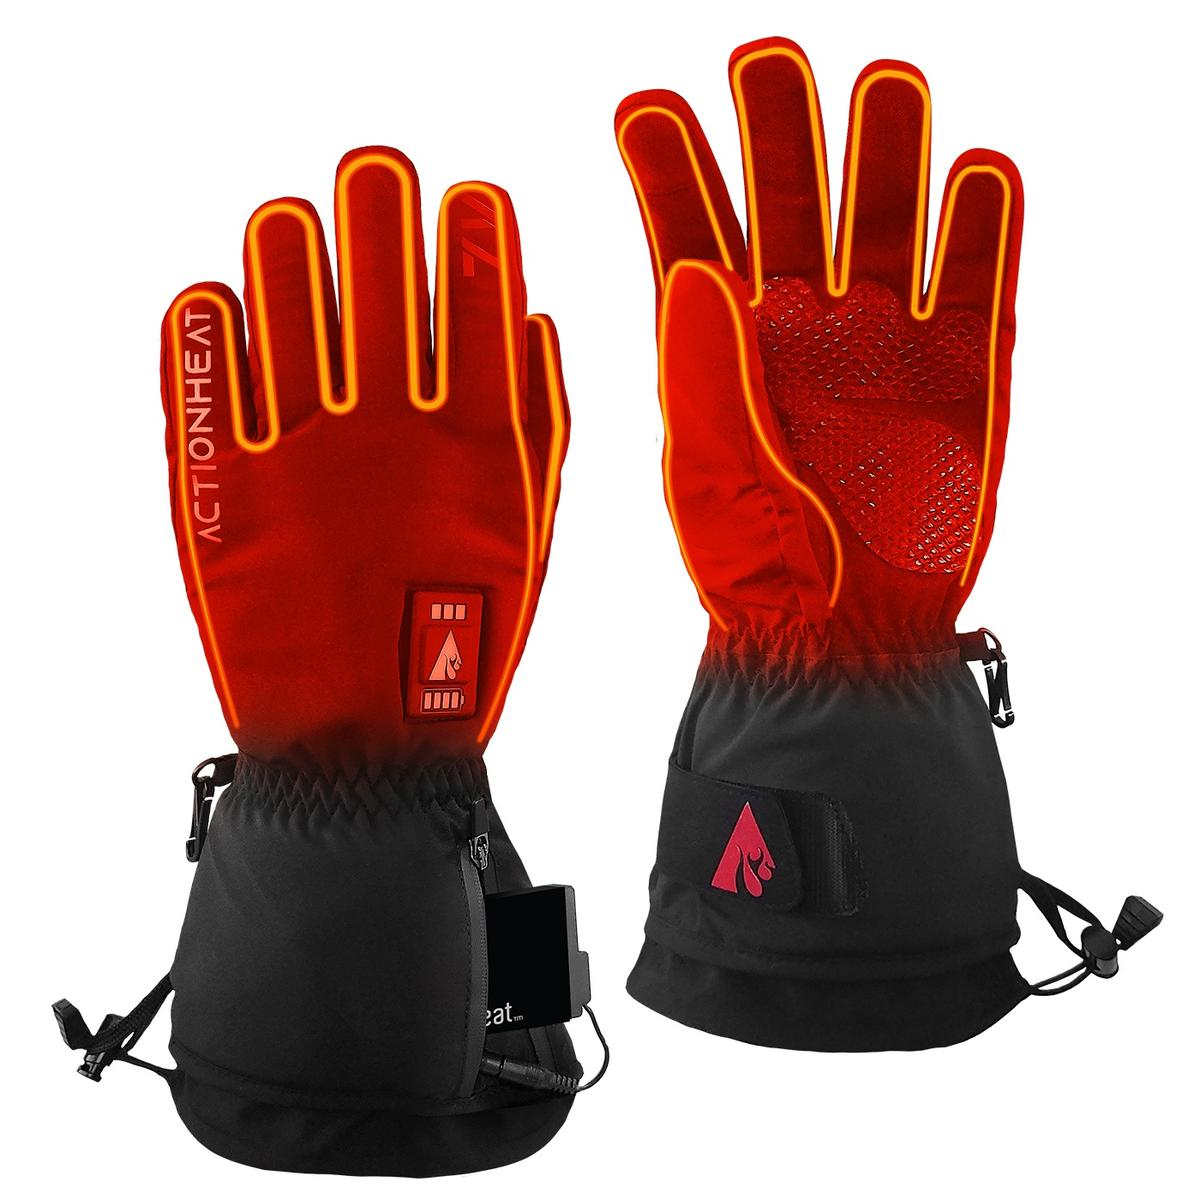 ActionHeat 7V Men's Everyday Heated Gloves - Right